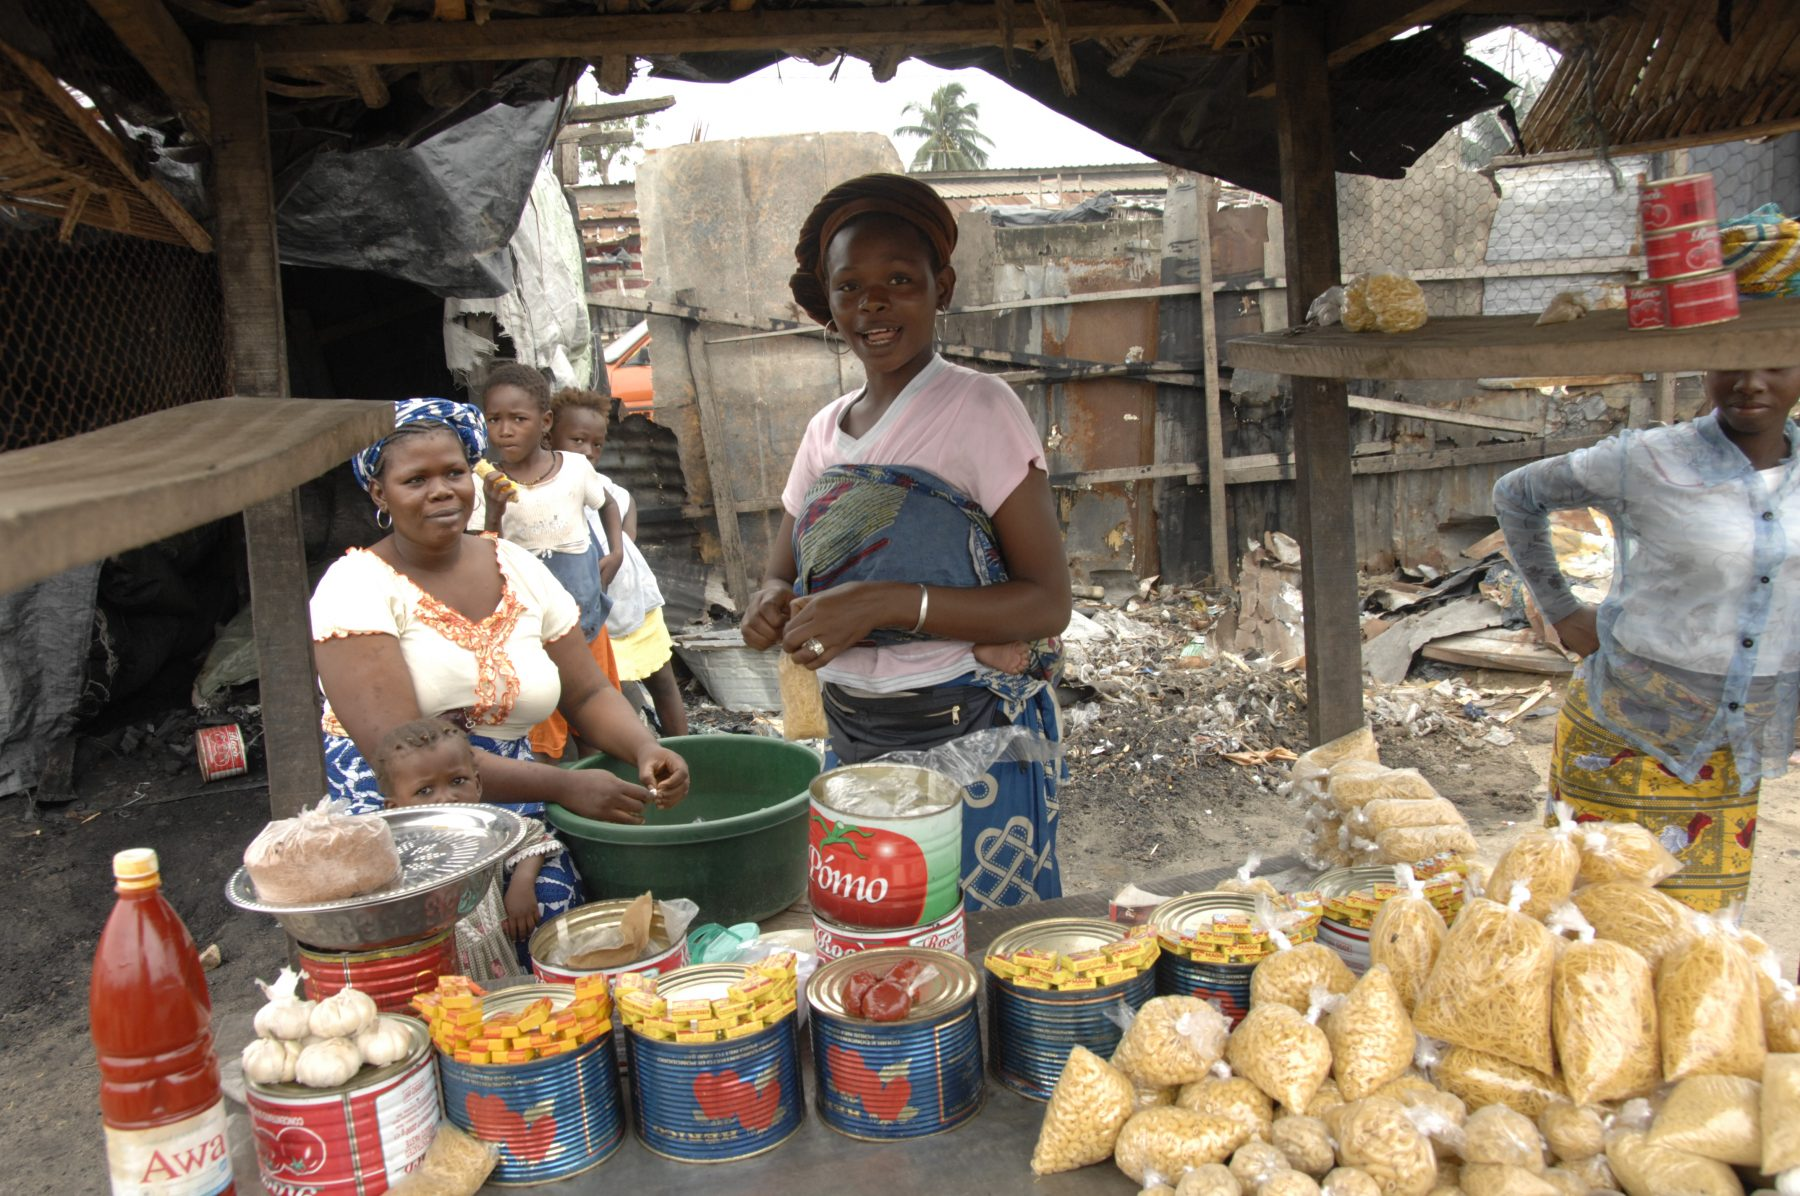 """Cite Houphouet Boigny"", one of 11 or more slum areas in the region of the city of Abidjan. Some of the residents have come to the area because of civil strife in the northern region of the country, others have come from nearby countries such as Mali and Burkina Faso seeking work. The government plans to raze many of the informal settlements in the coming months which are built on ground that is unstable because of rain wash or because they are too close to the ocean's edge. Meanwhile, there is no plan to resettle the displaced. HFH Cote d'Ivoire has planned a pilot program in another urban slum in the next fiscal year to show what kind of work can be done to help the housing situation of similar populations. (substand/ poverty housing)(country formerly IVORY COAST)"